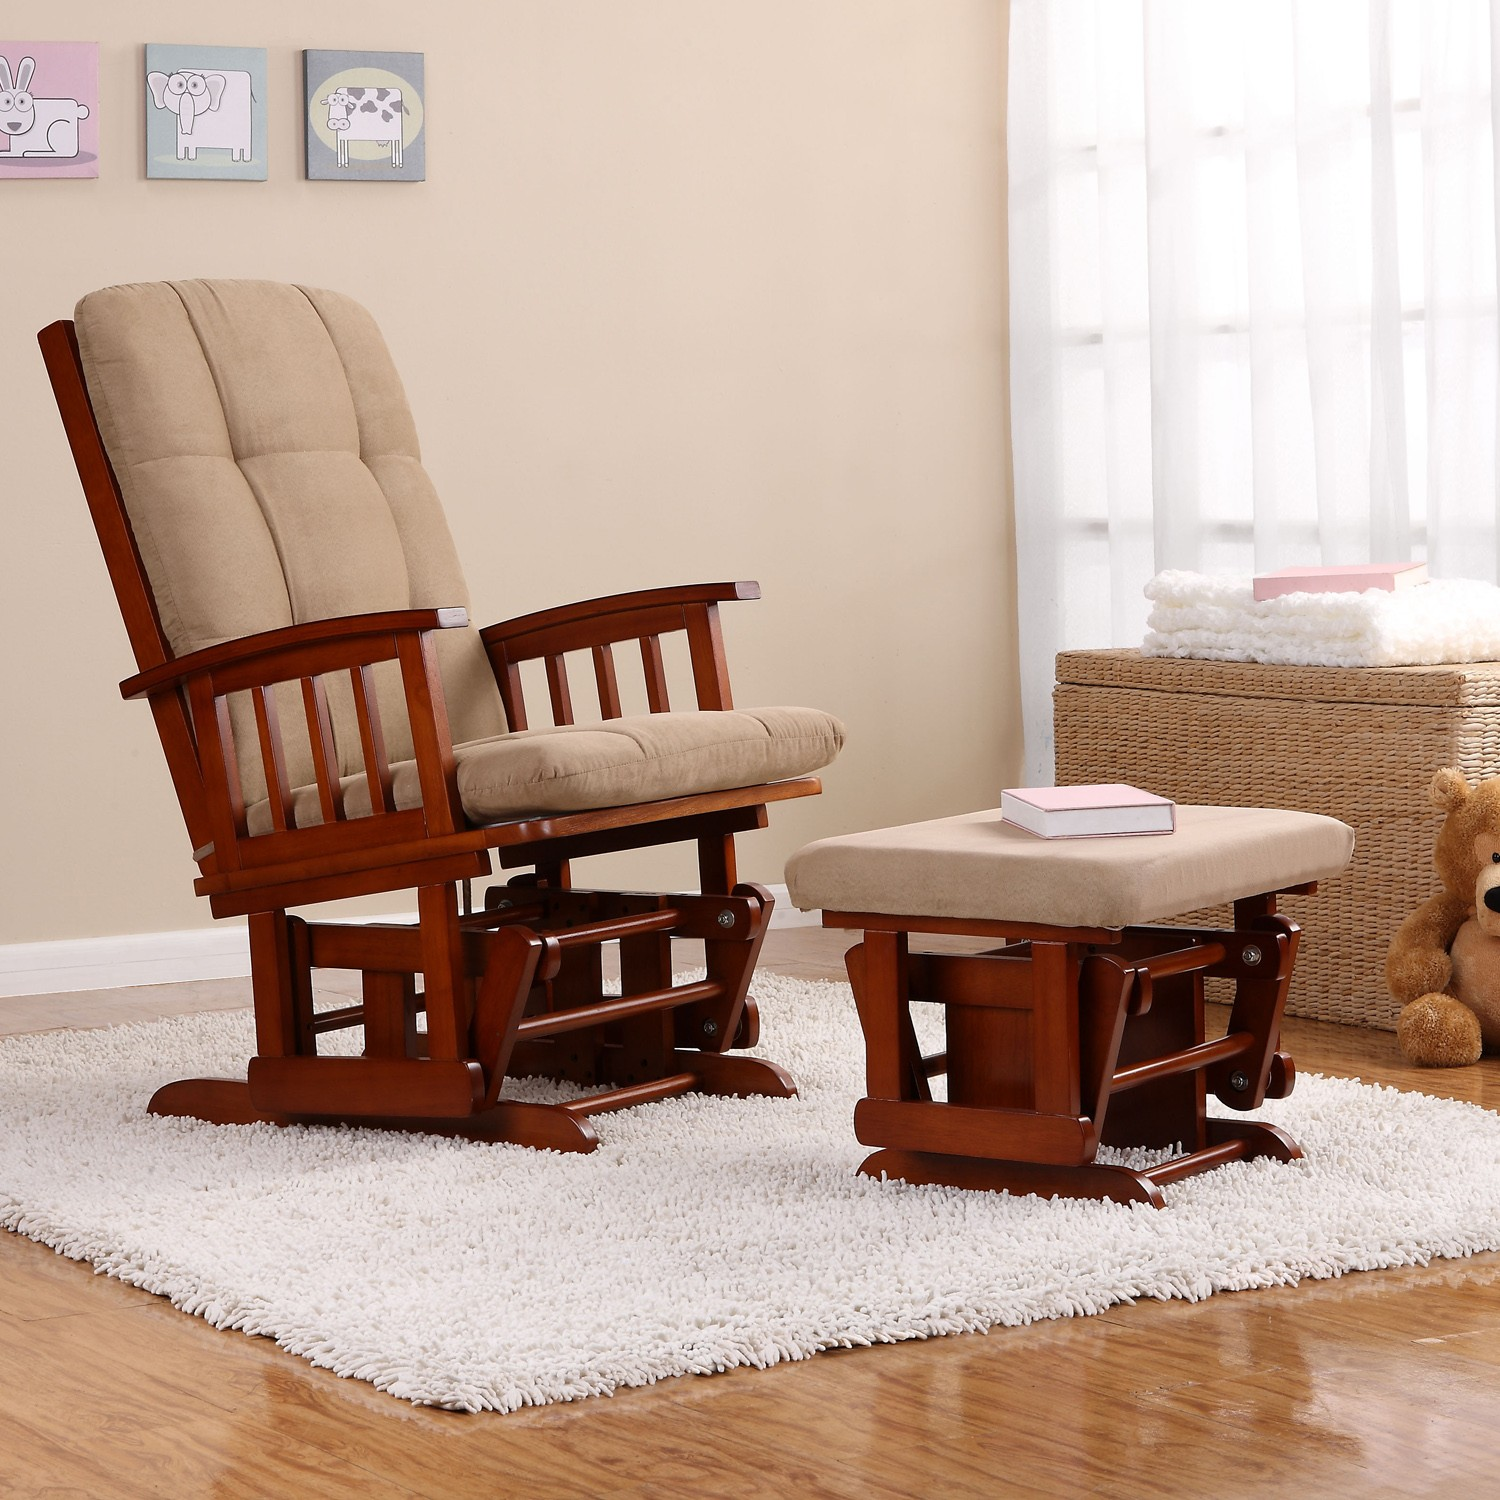 Image of: Cozy Glider Rocking Chairs